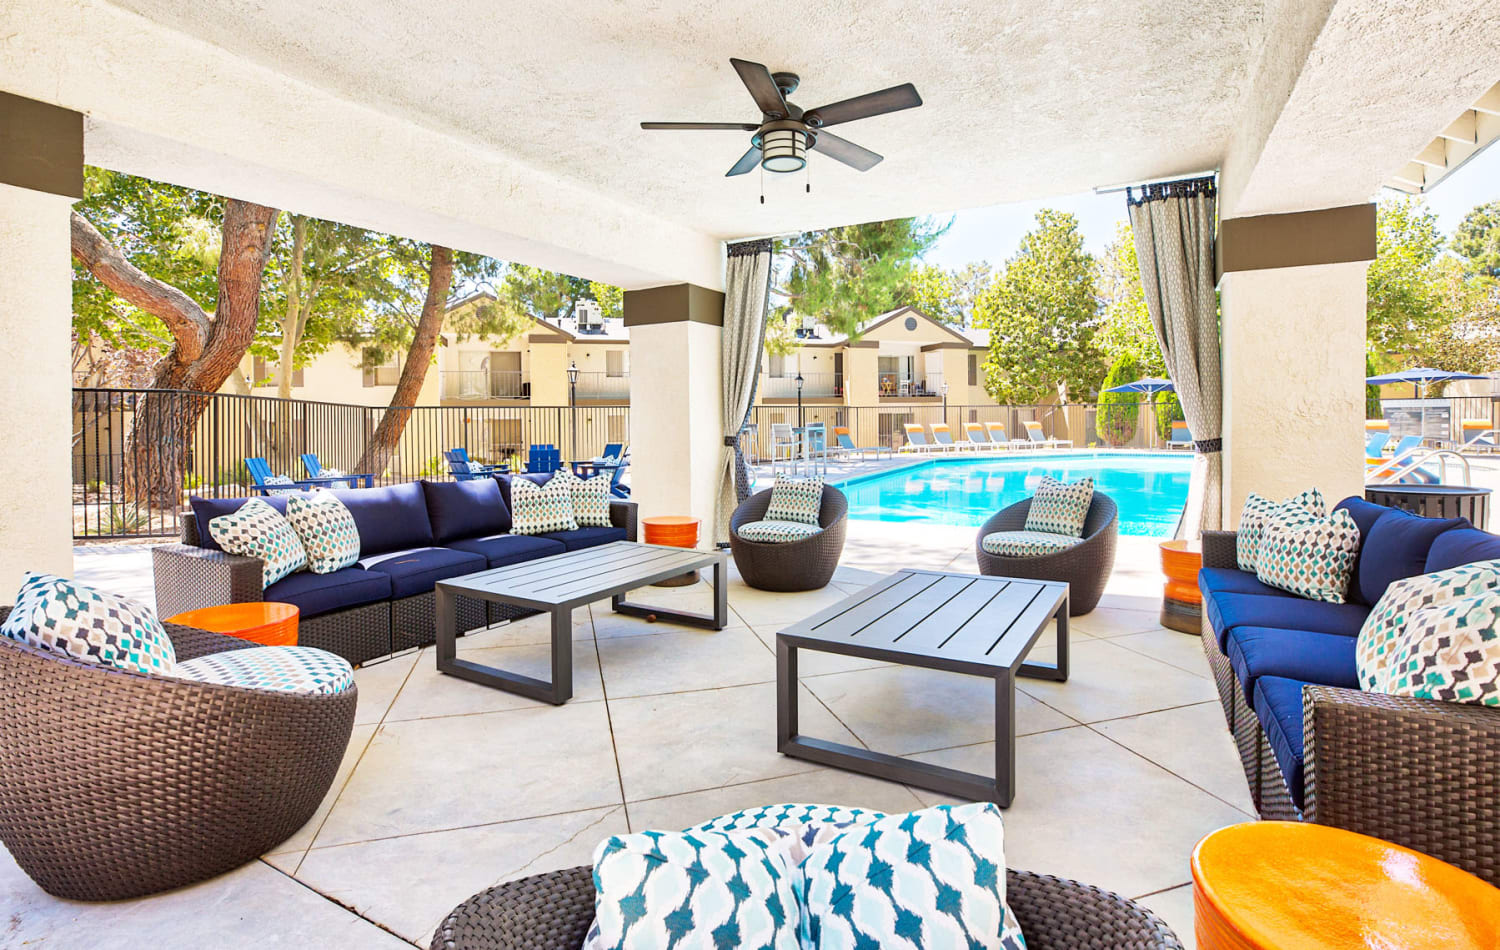 Covered outdoor lounge area with a ceiling fan near the swimming pool at Mountain Vista in Victorville, California